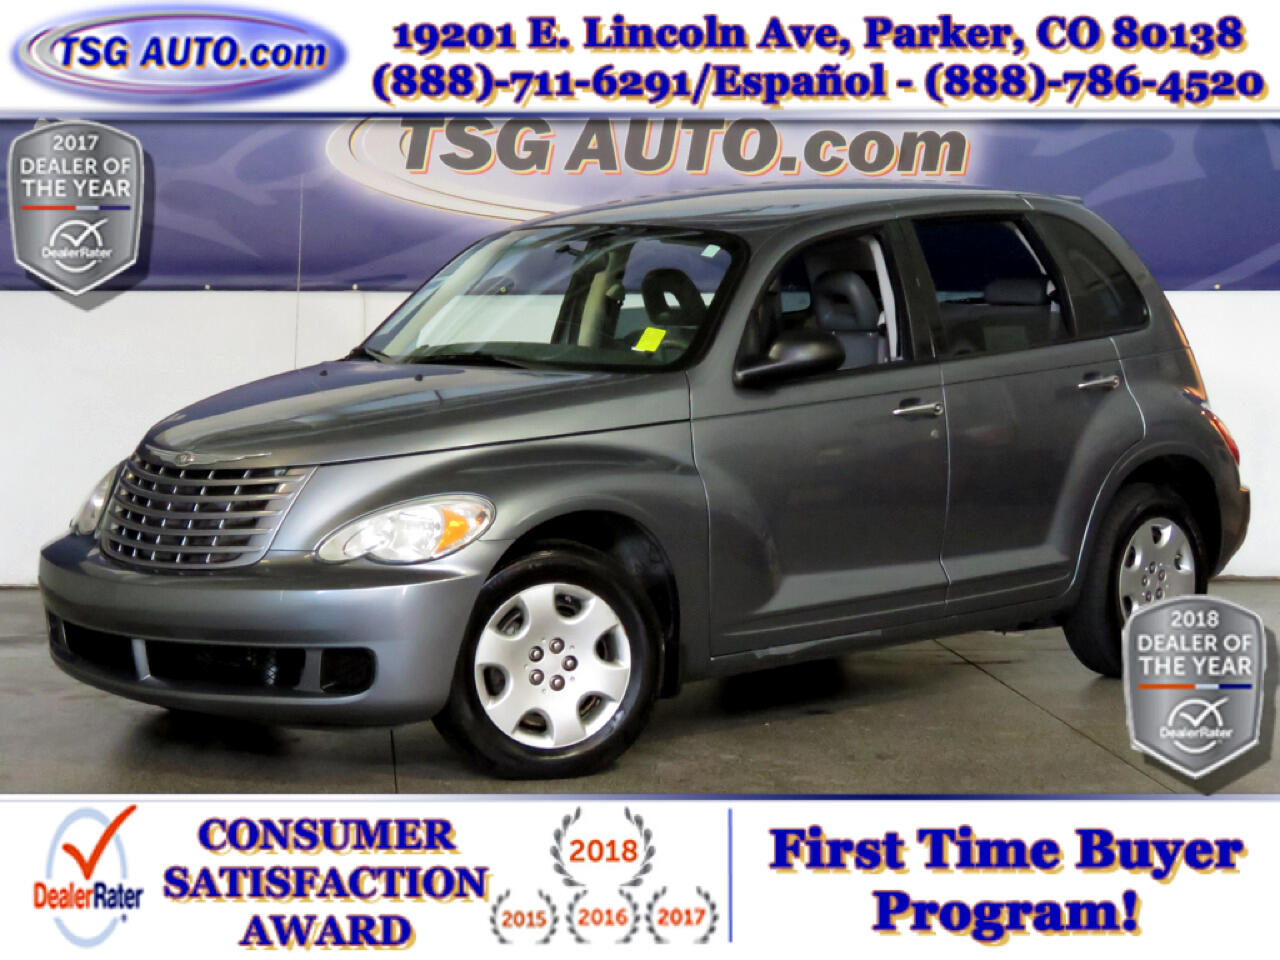 2008 Chrysler PT Cruiser 2.4L I4